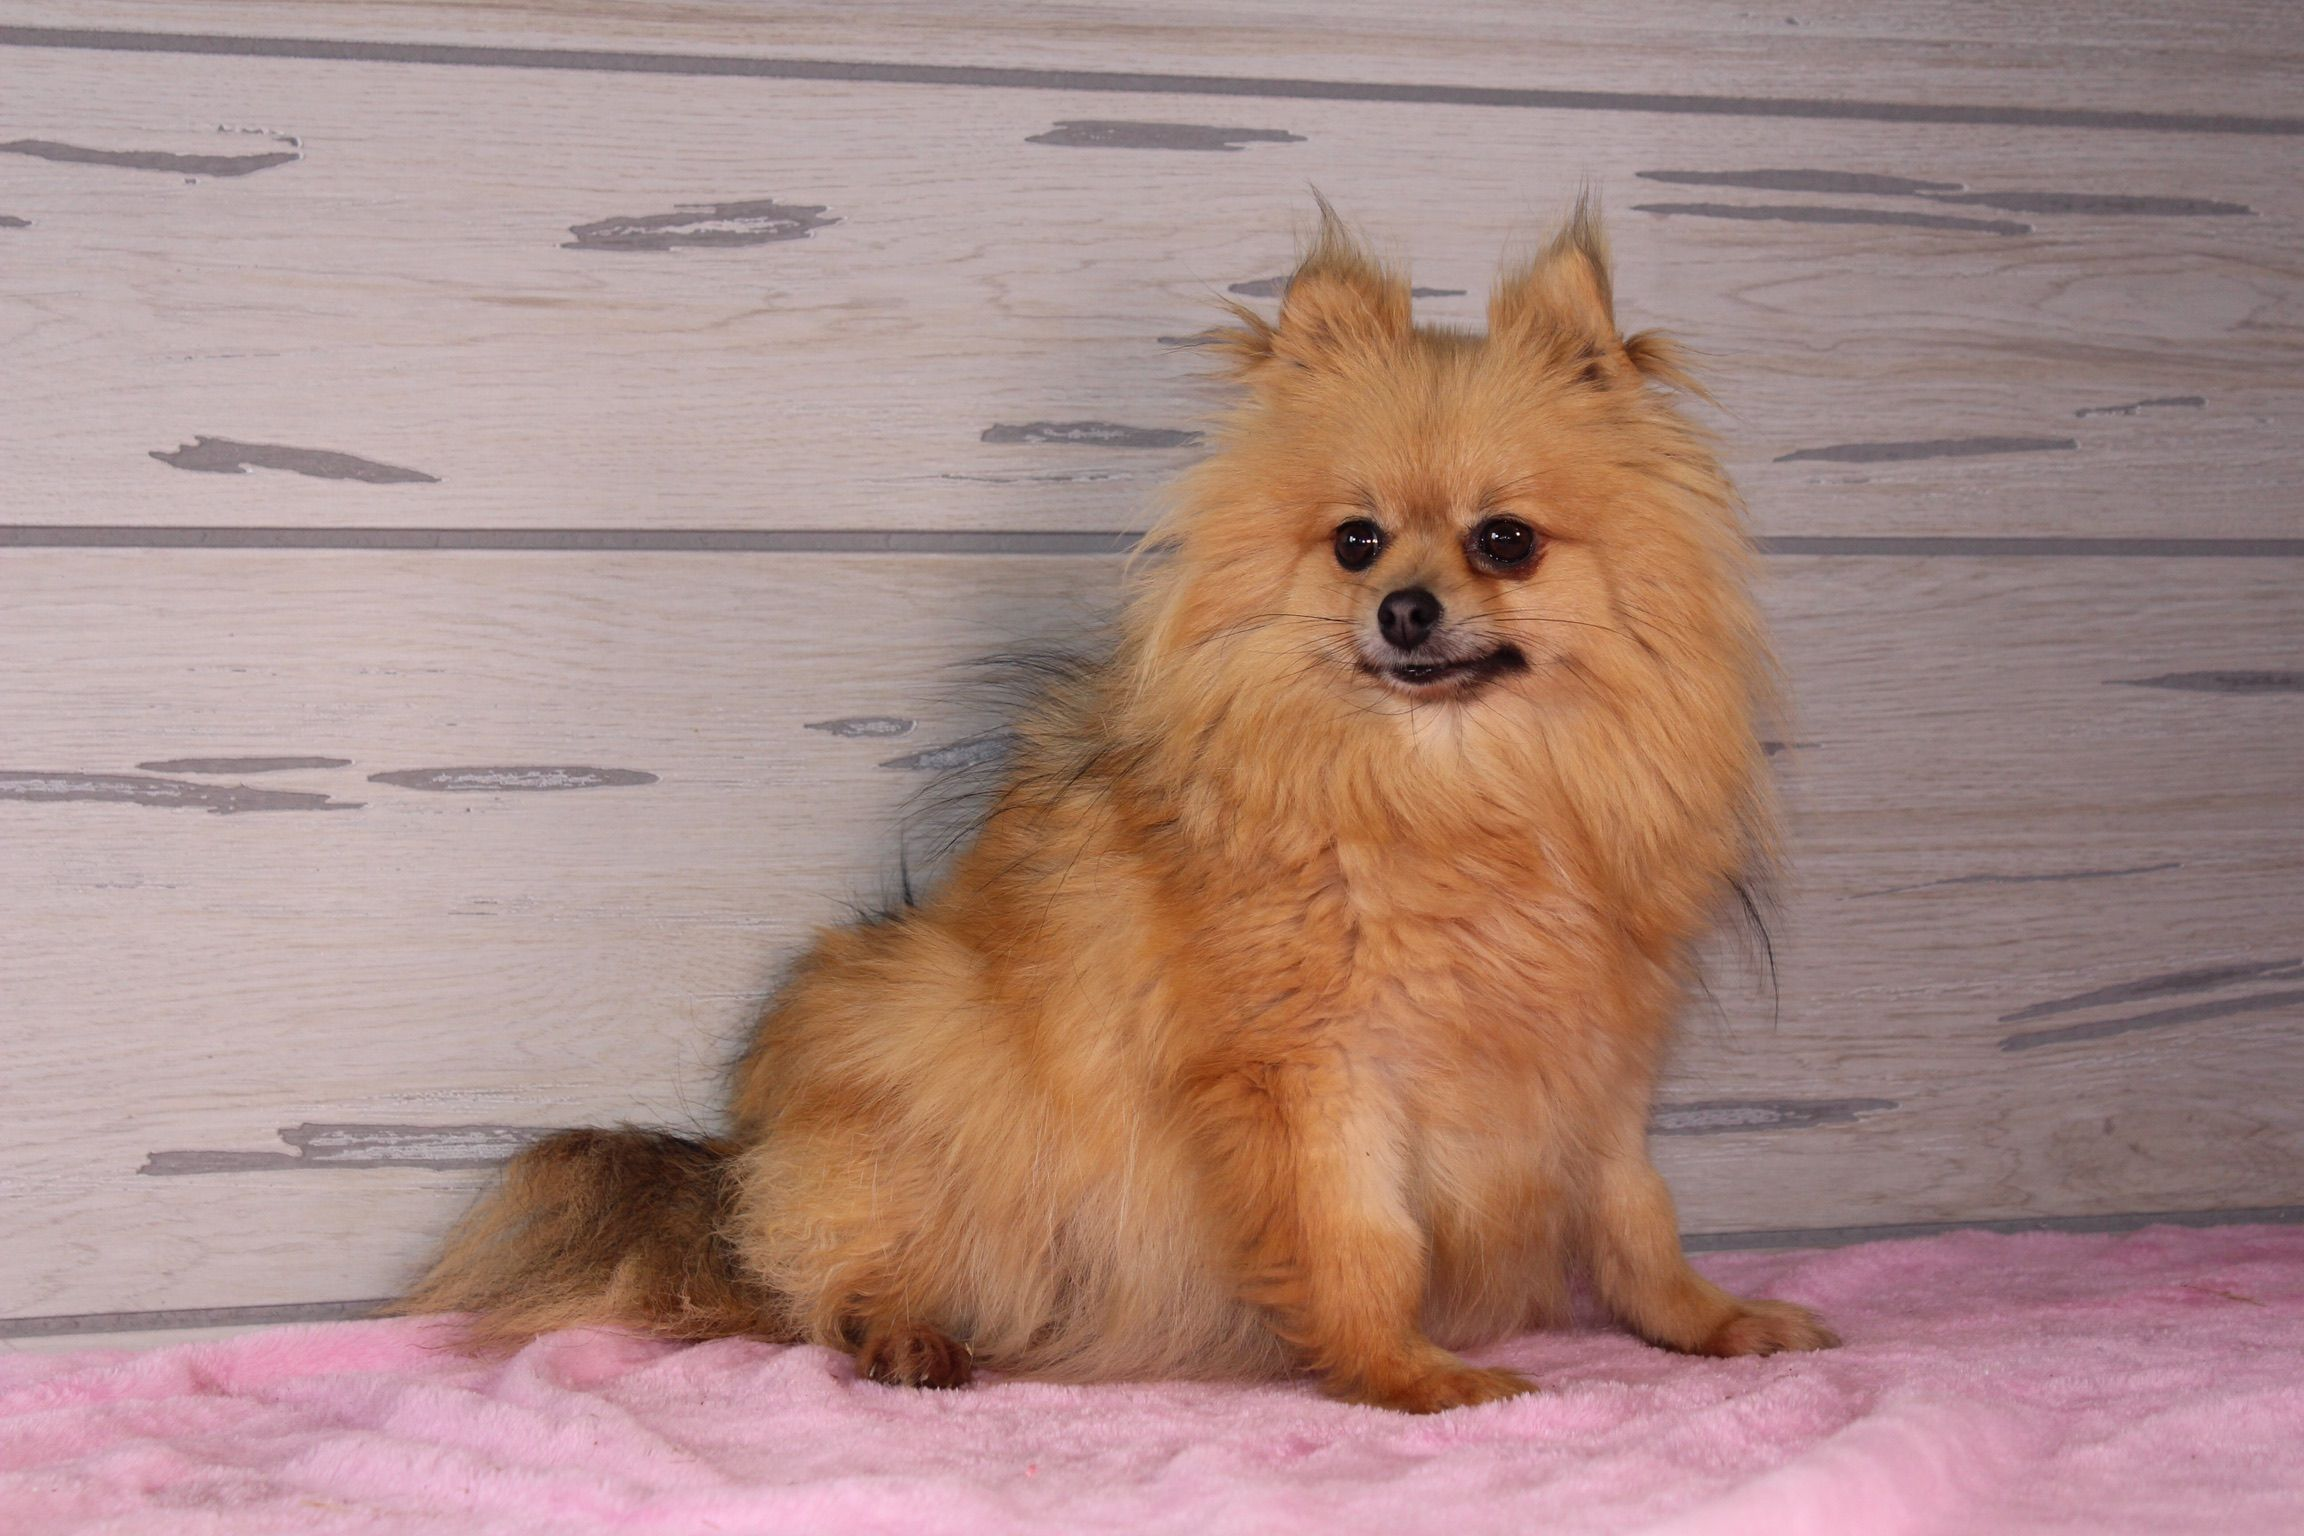 Amber Akc Pomeranian Pup For Sale Near Nappanee Indiana In 2020 Puppies Puppy Finder Pomeranian Puppy